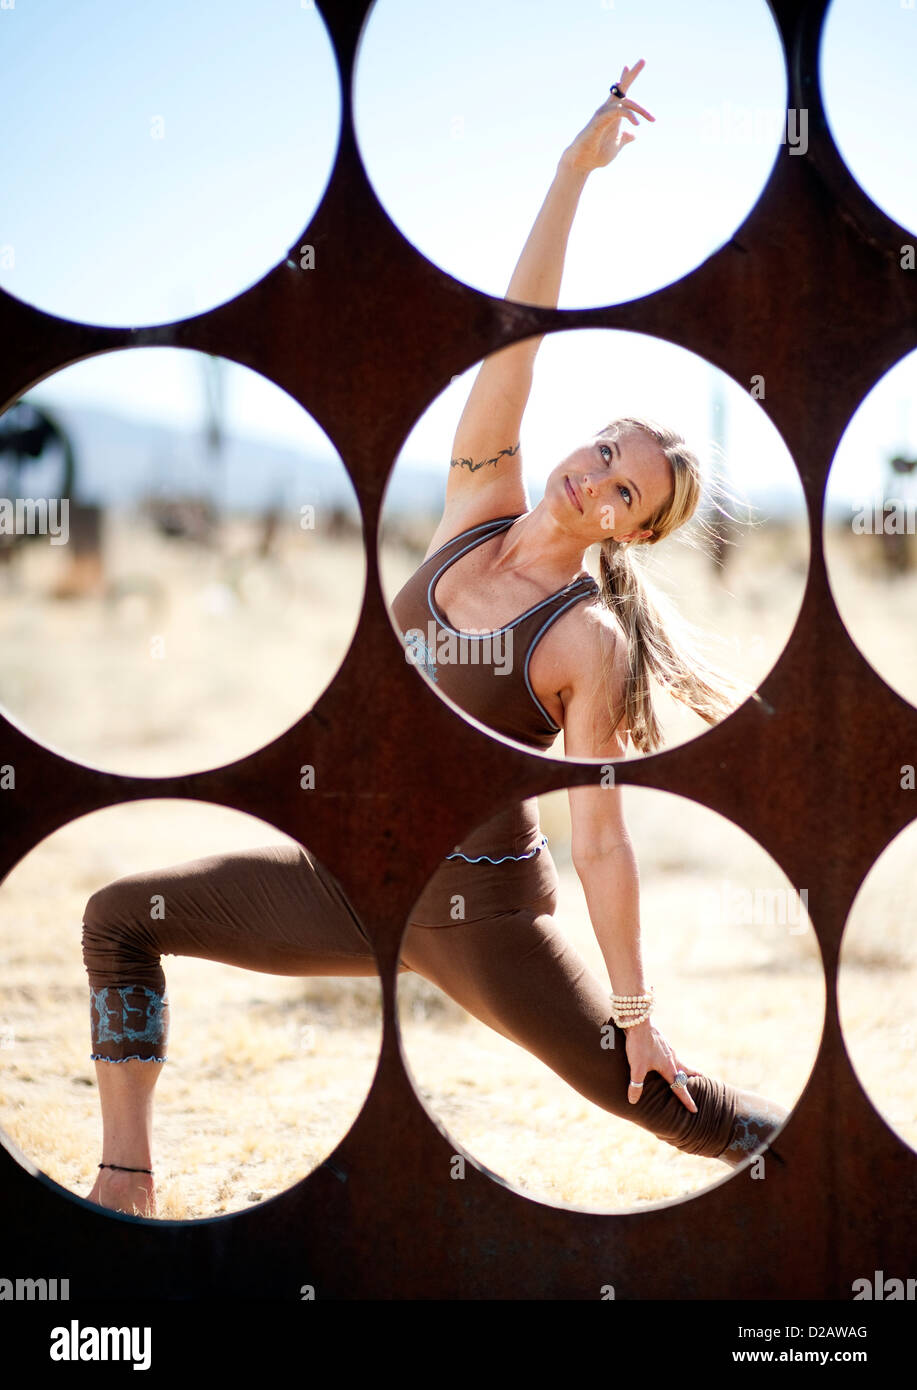 Woman in yoga pose behind a screen of circles. - Stock Image